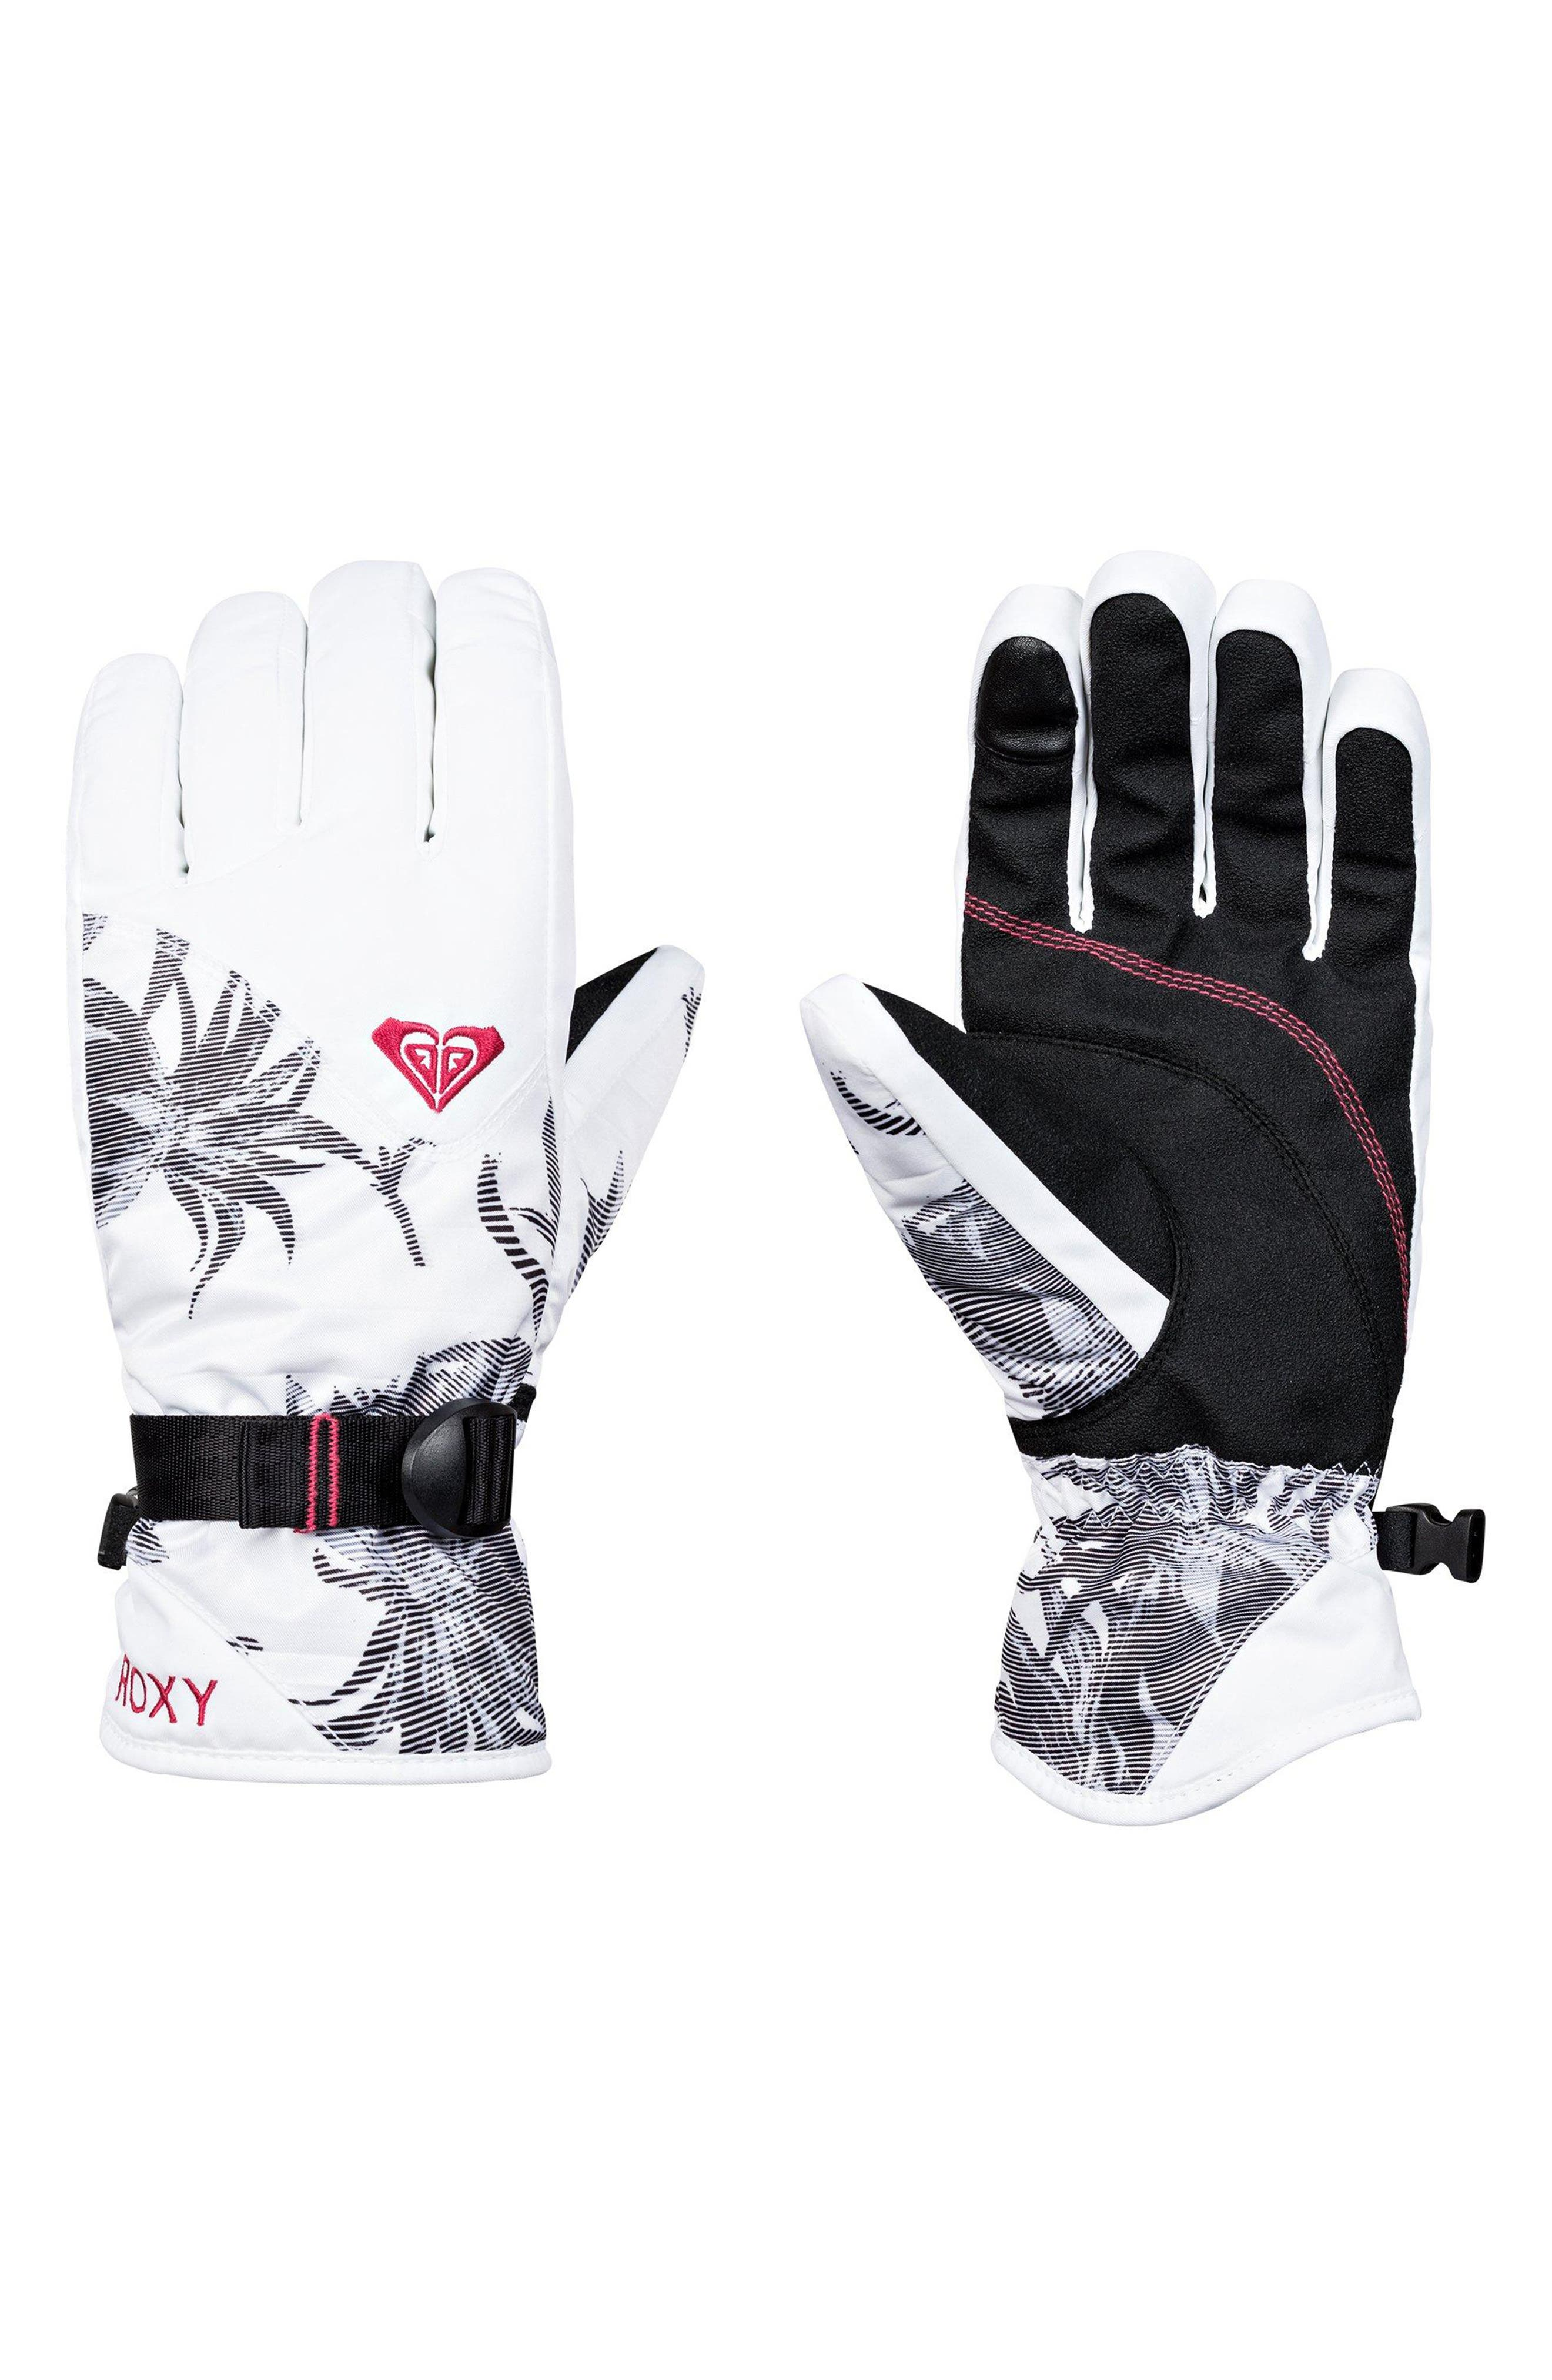 Jetty Print Snow Sport Gloves,                             Main thumbnail 1, color,                             BRIGHT WHITE/ SWELL FLOWERS